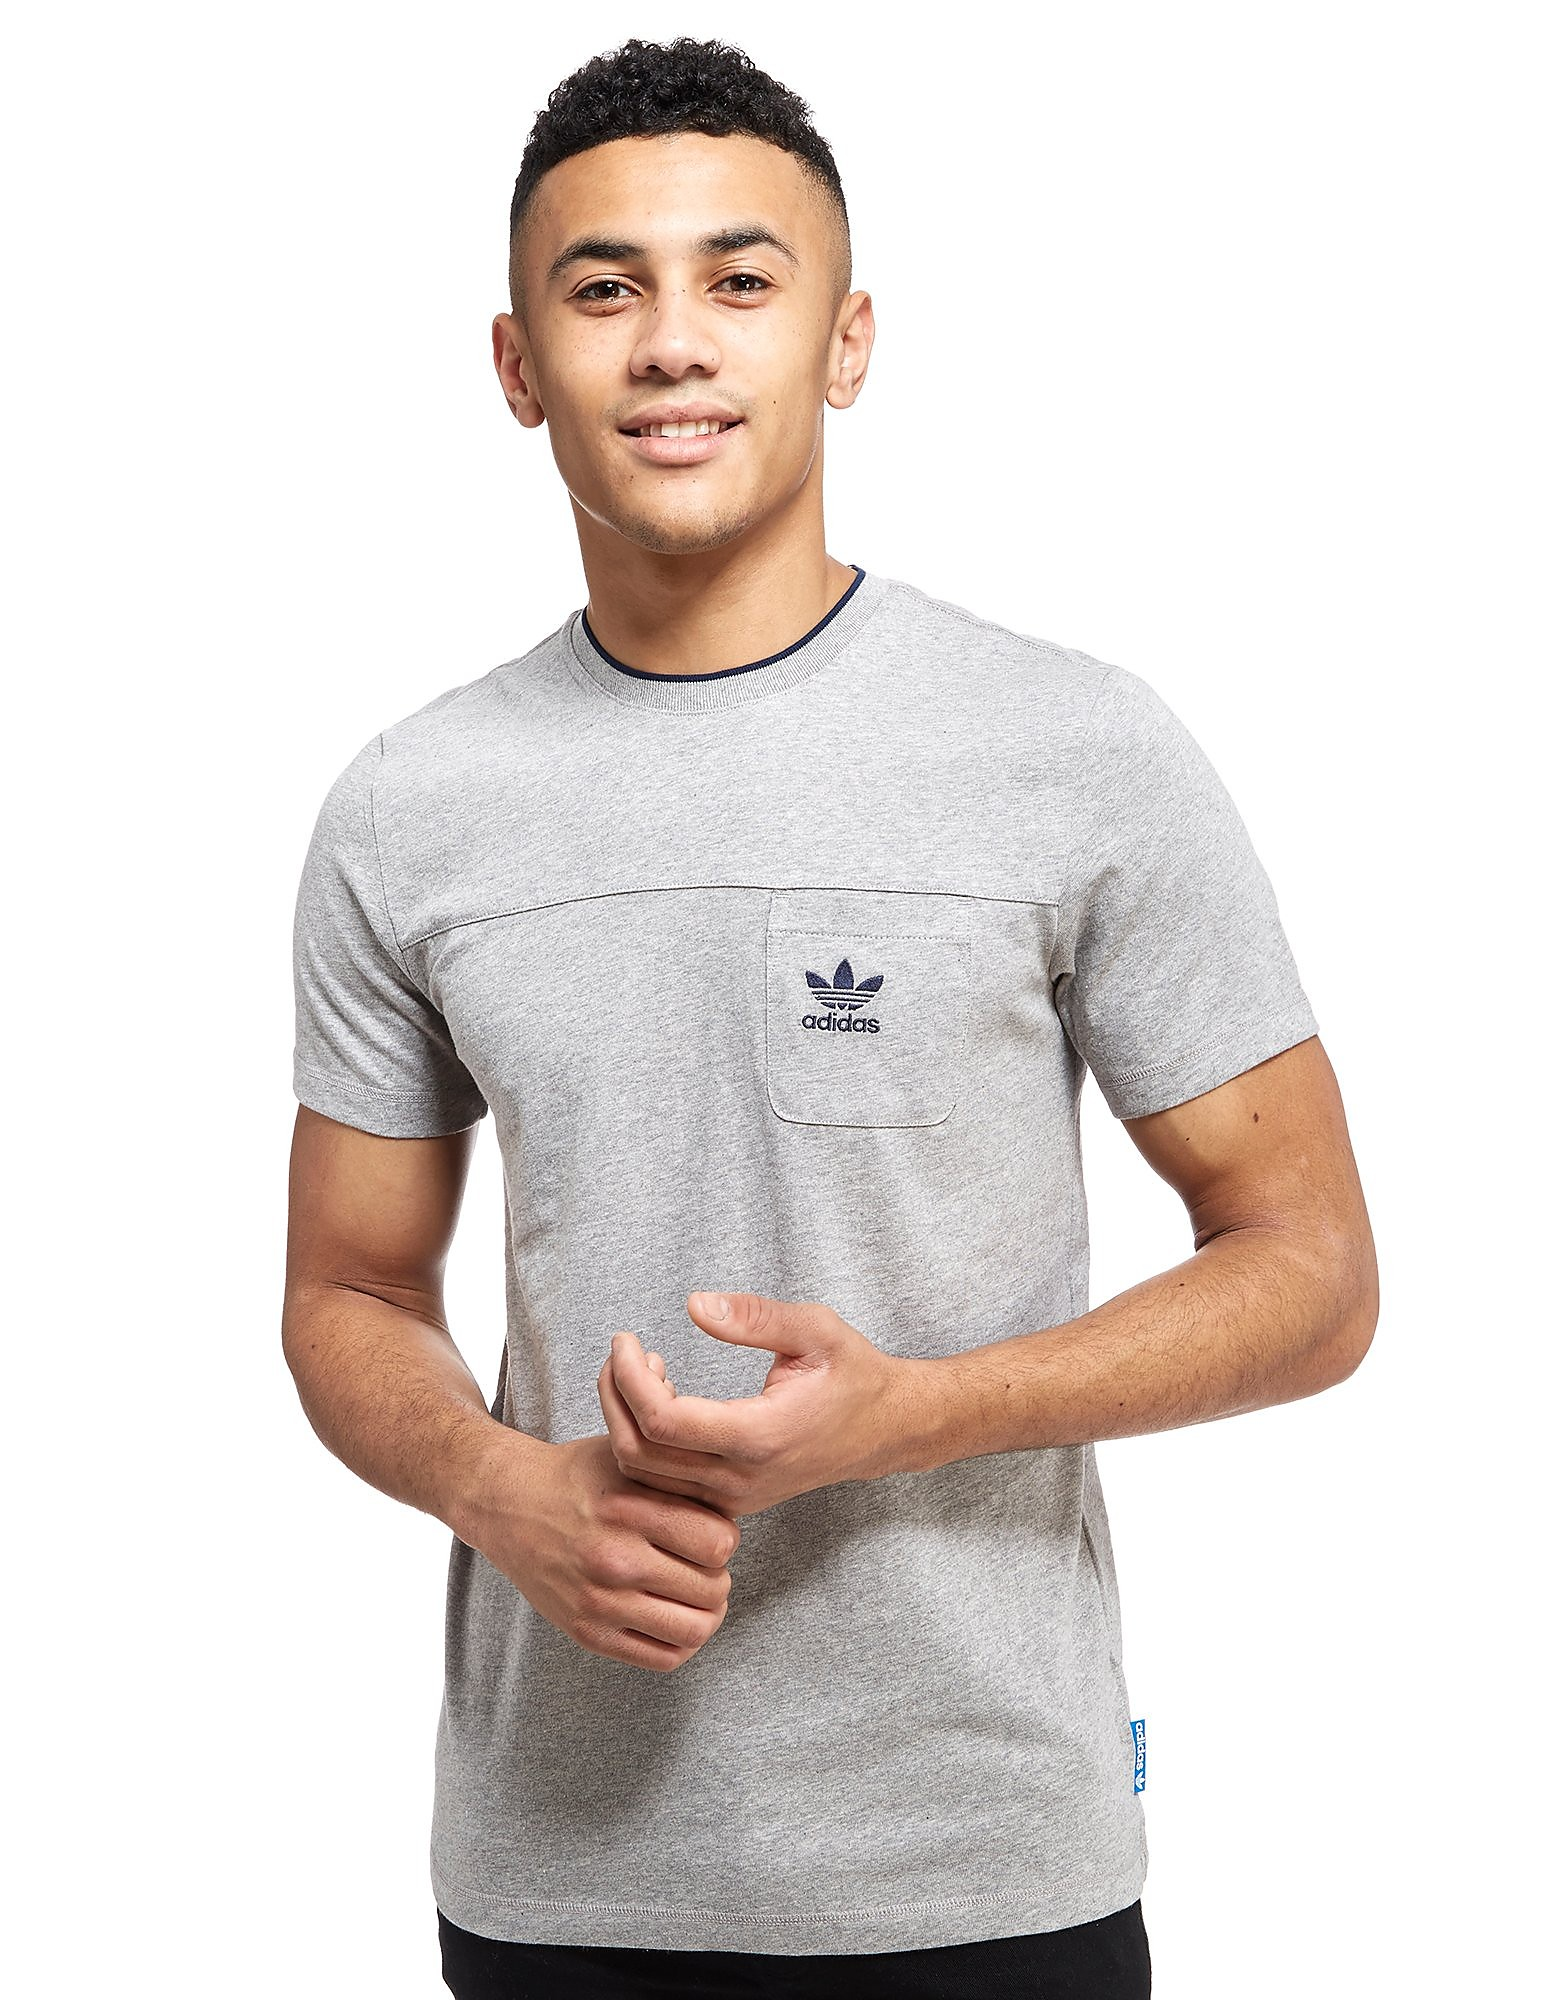 adidas Originals PB T-Shirt